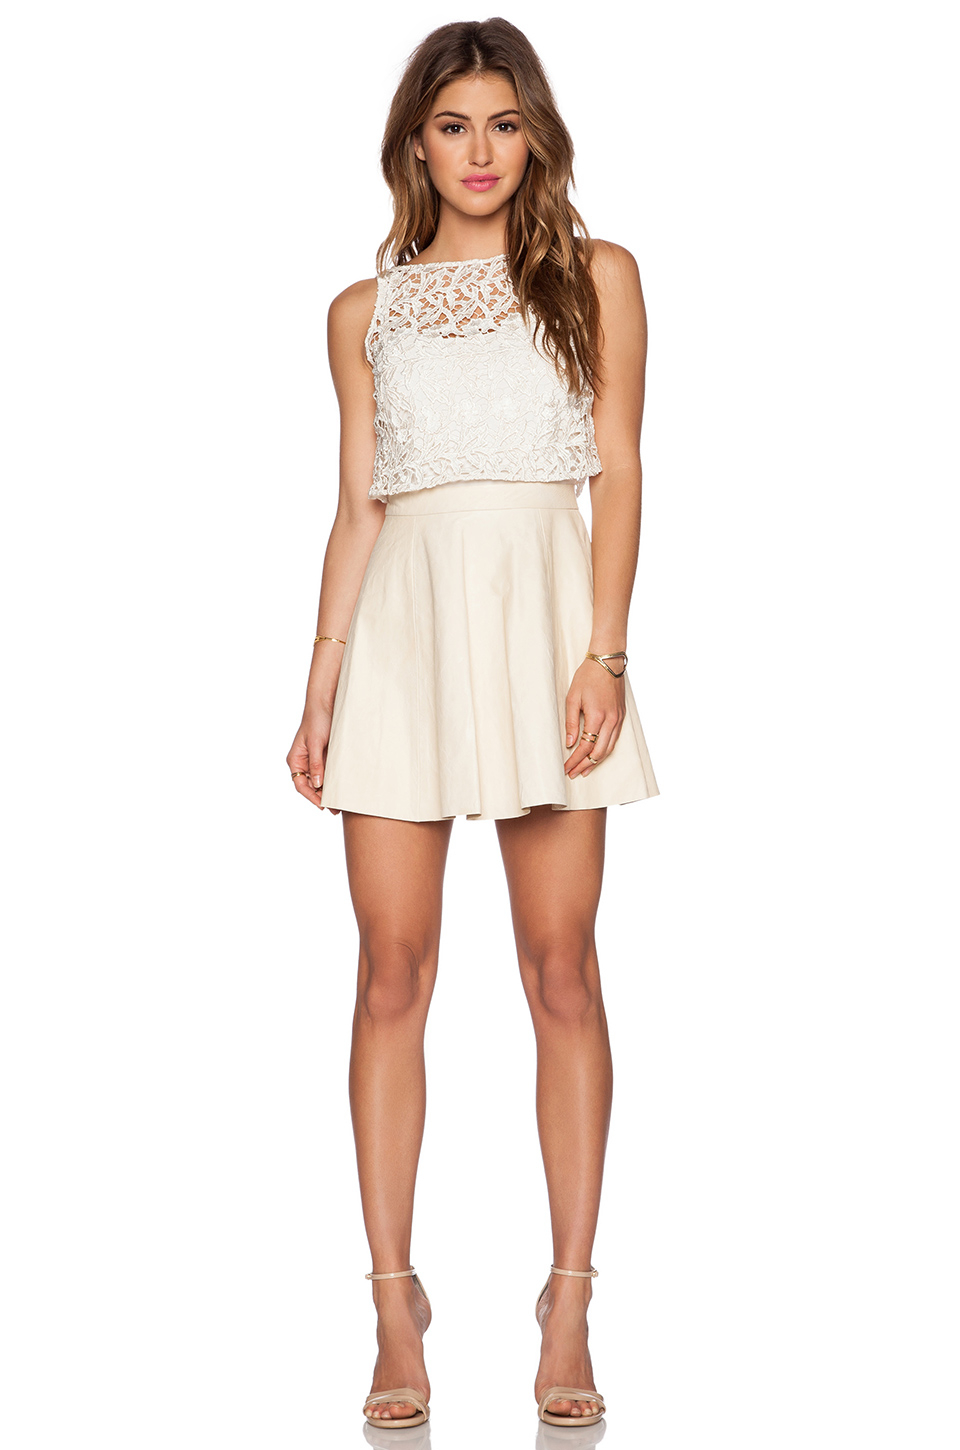 White leather and lace dress